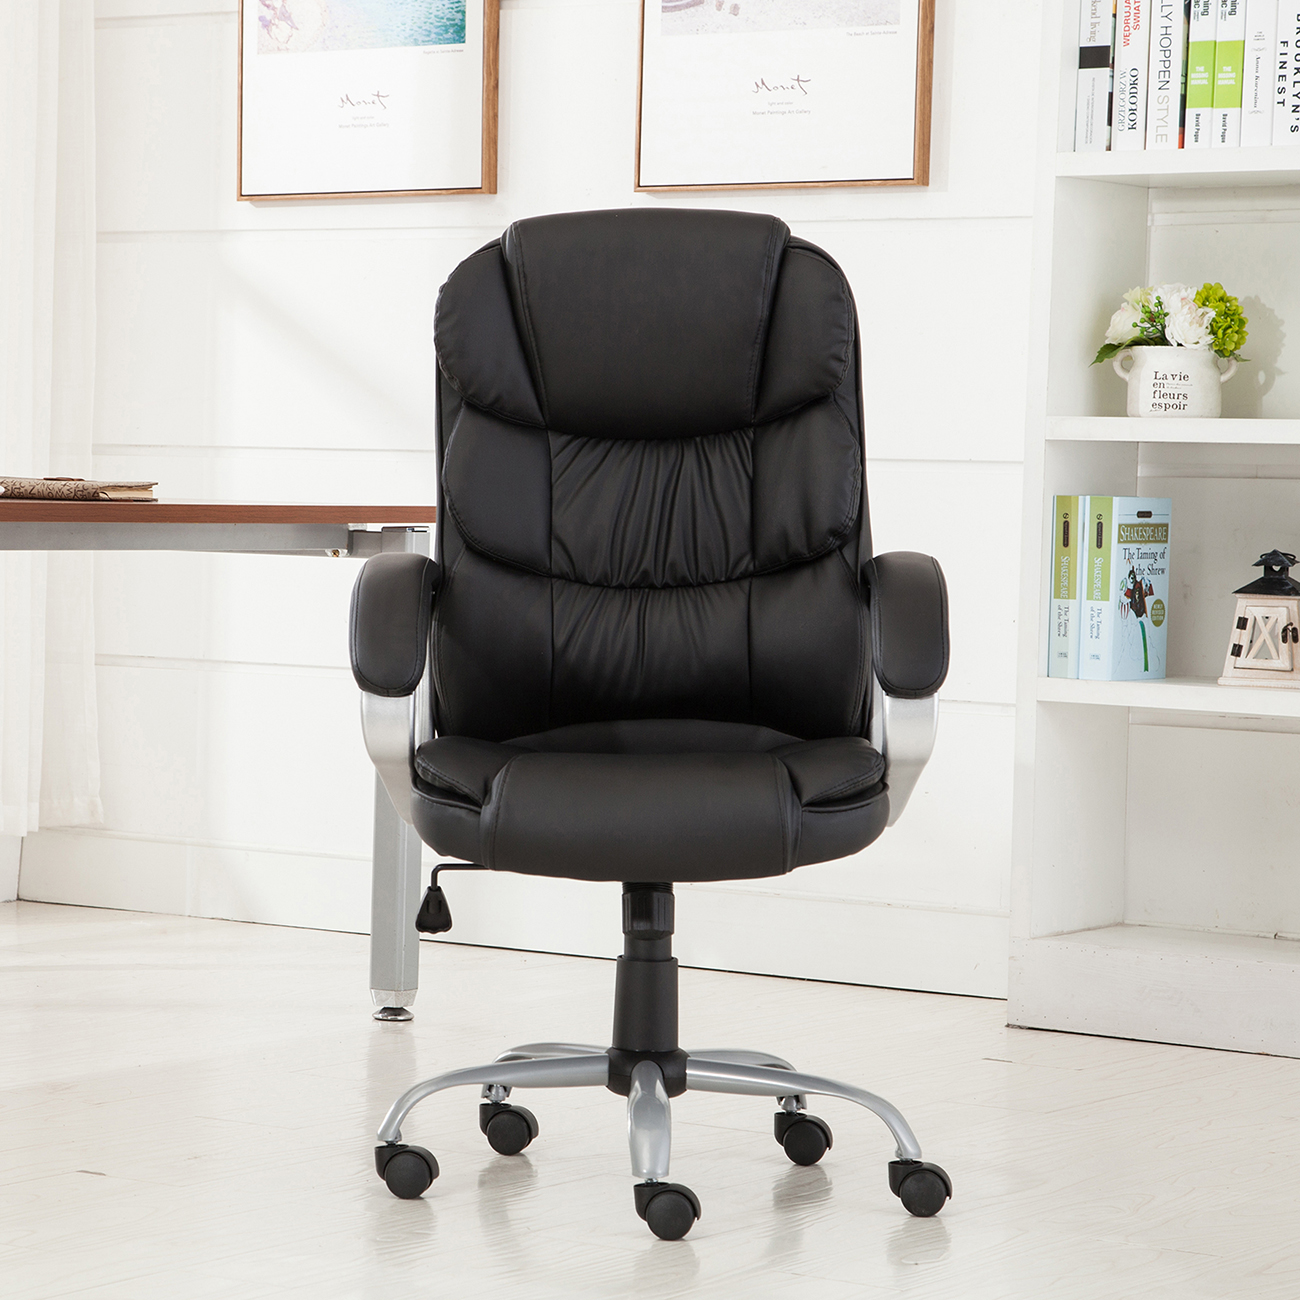 Black Desk Chair Pu Leather Office Rolling Computer Chair Black Mocha High